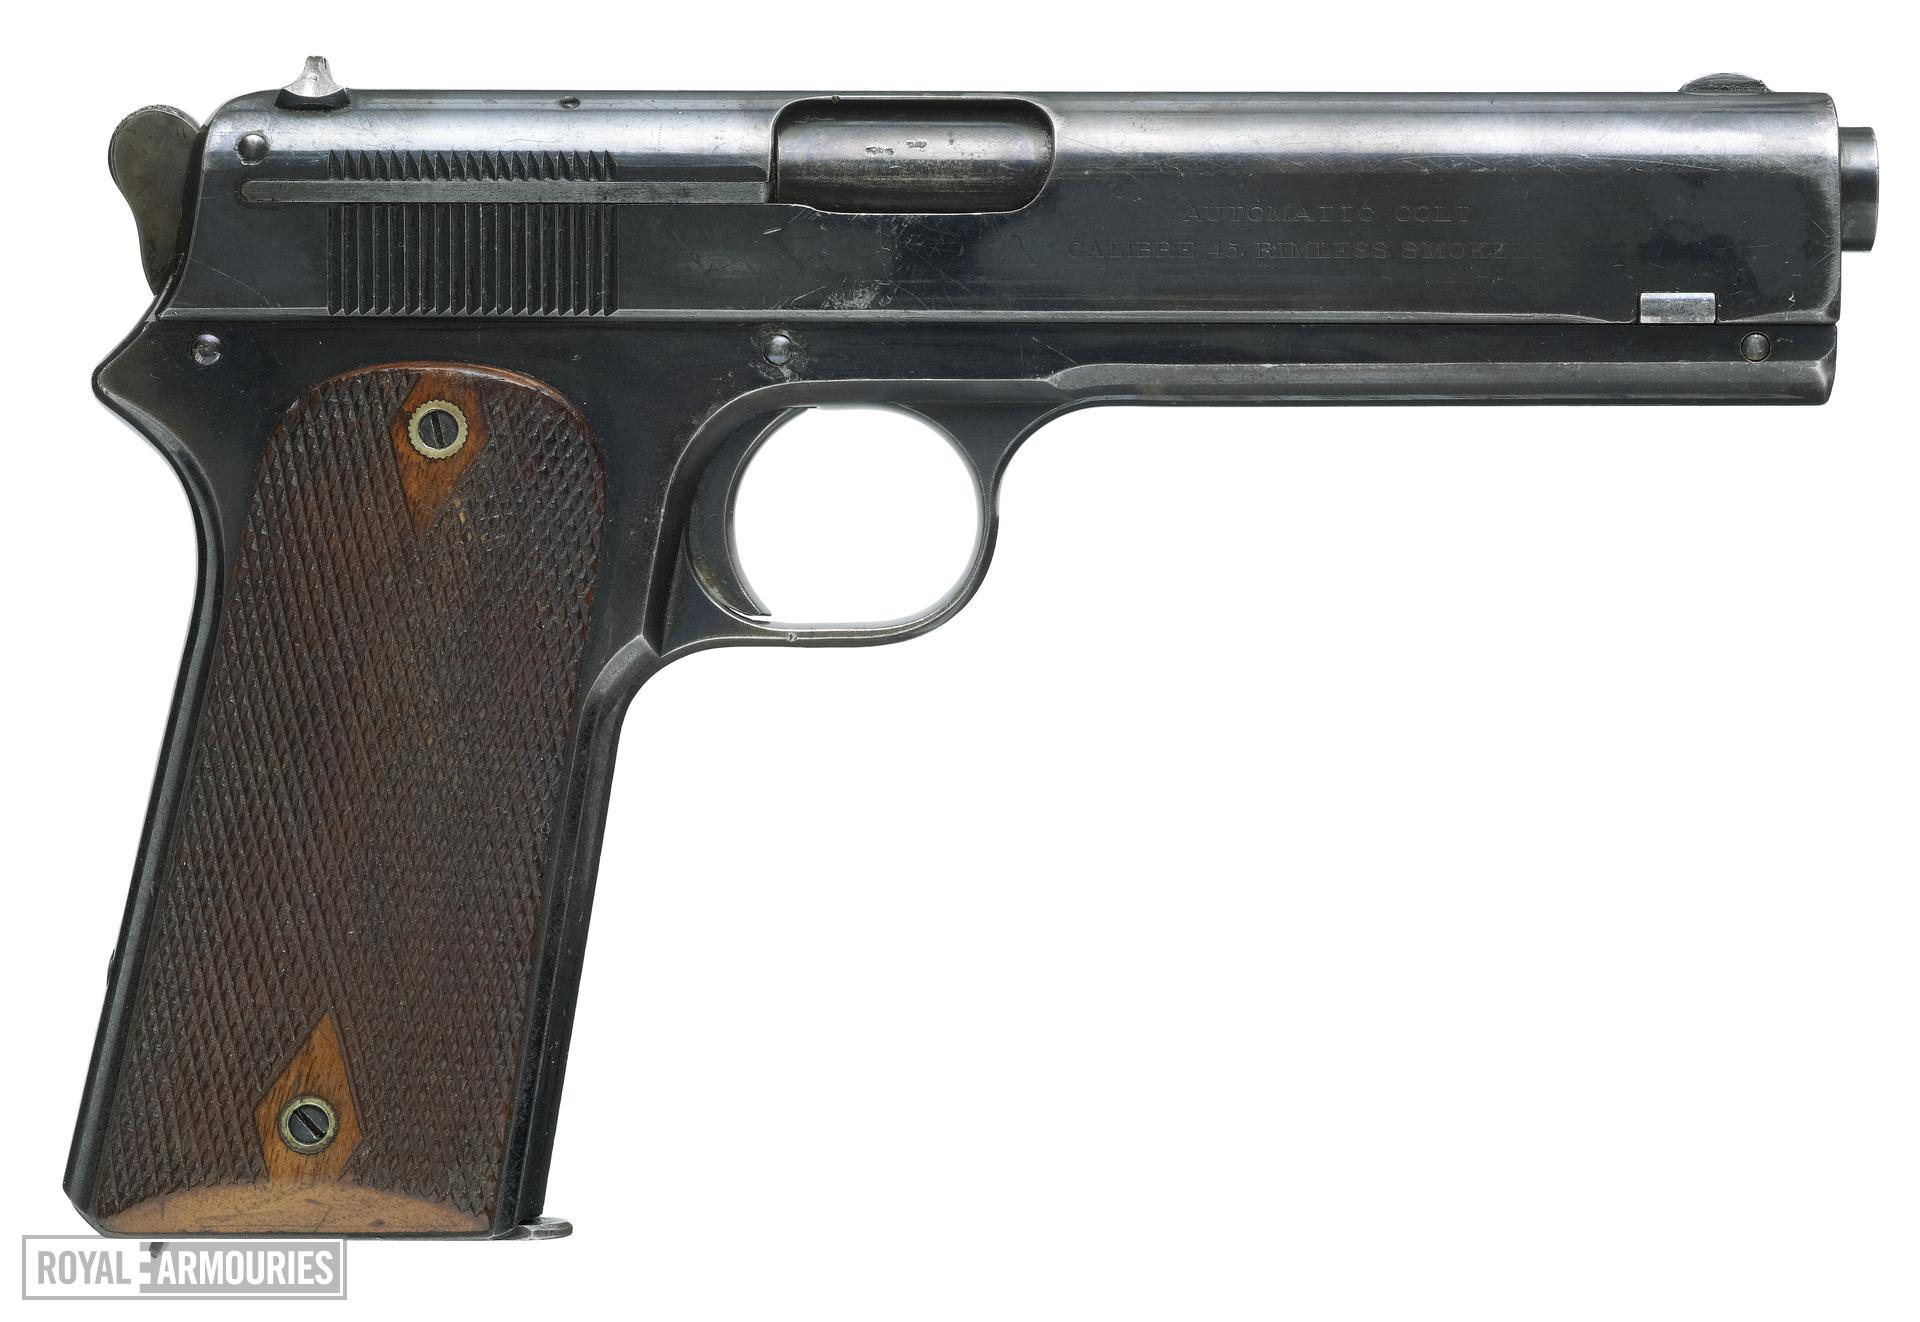 Centrefire self-loading pistol - Colt Model 1905